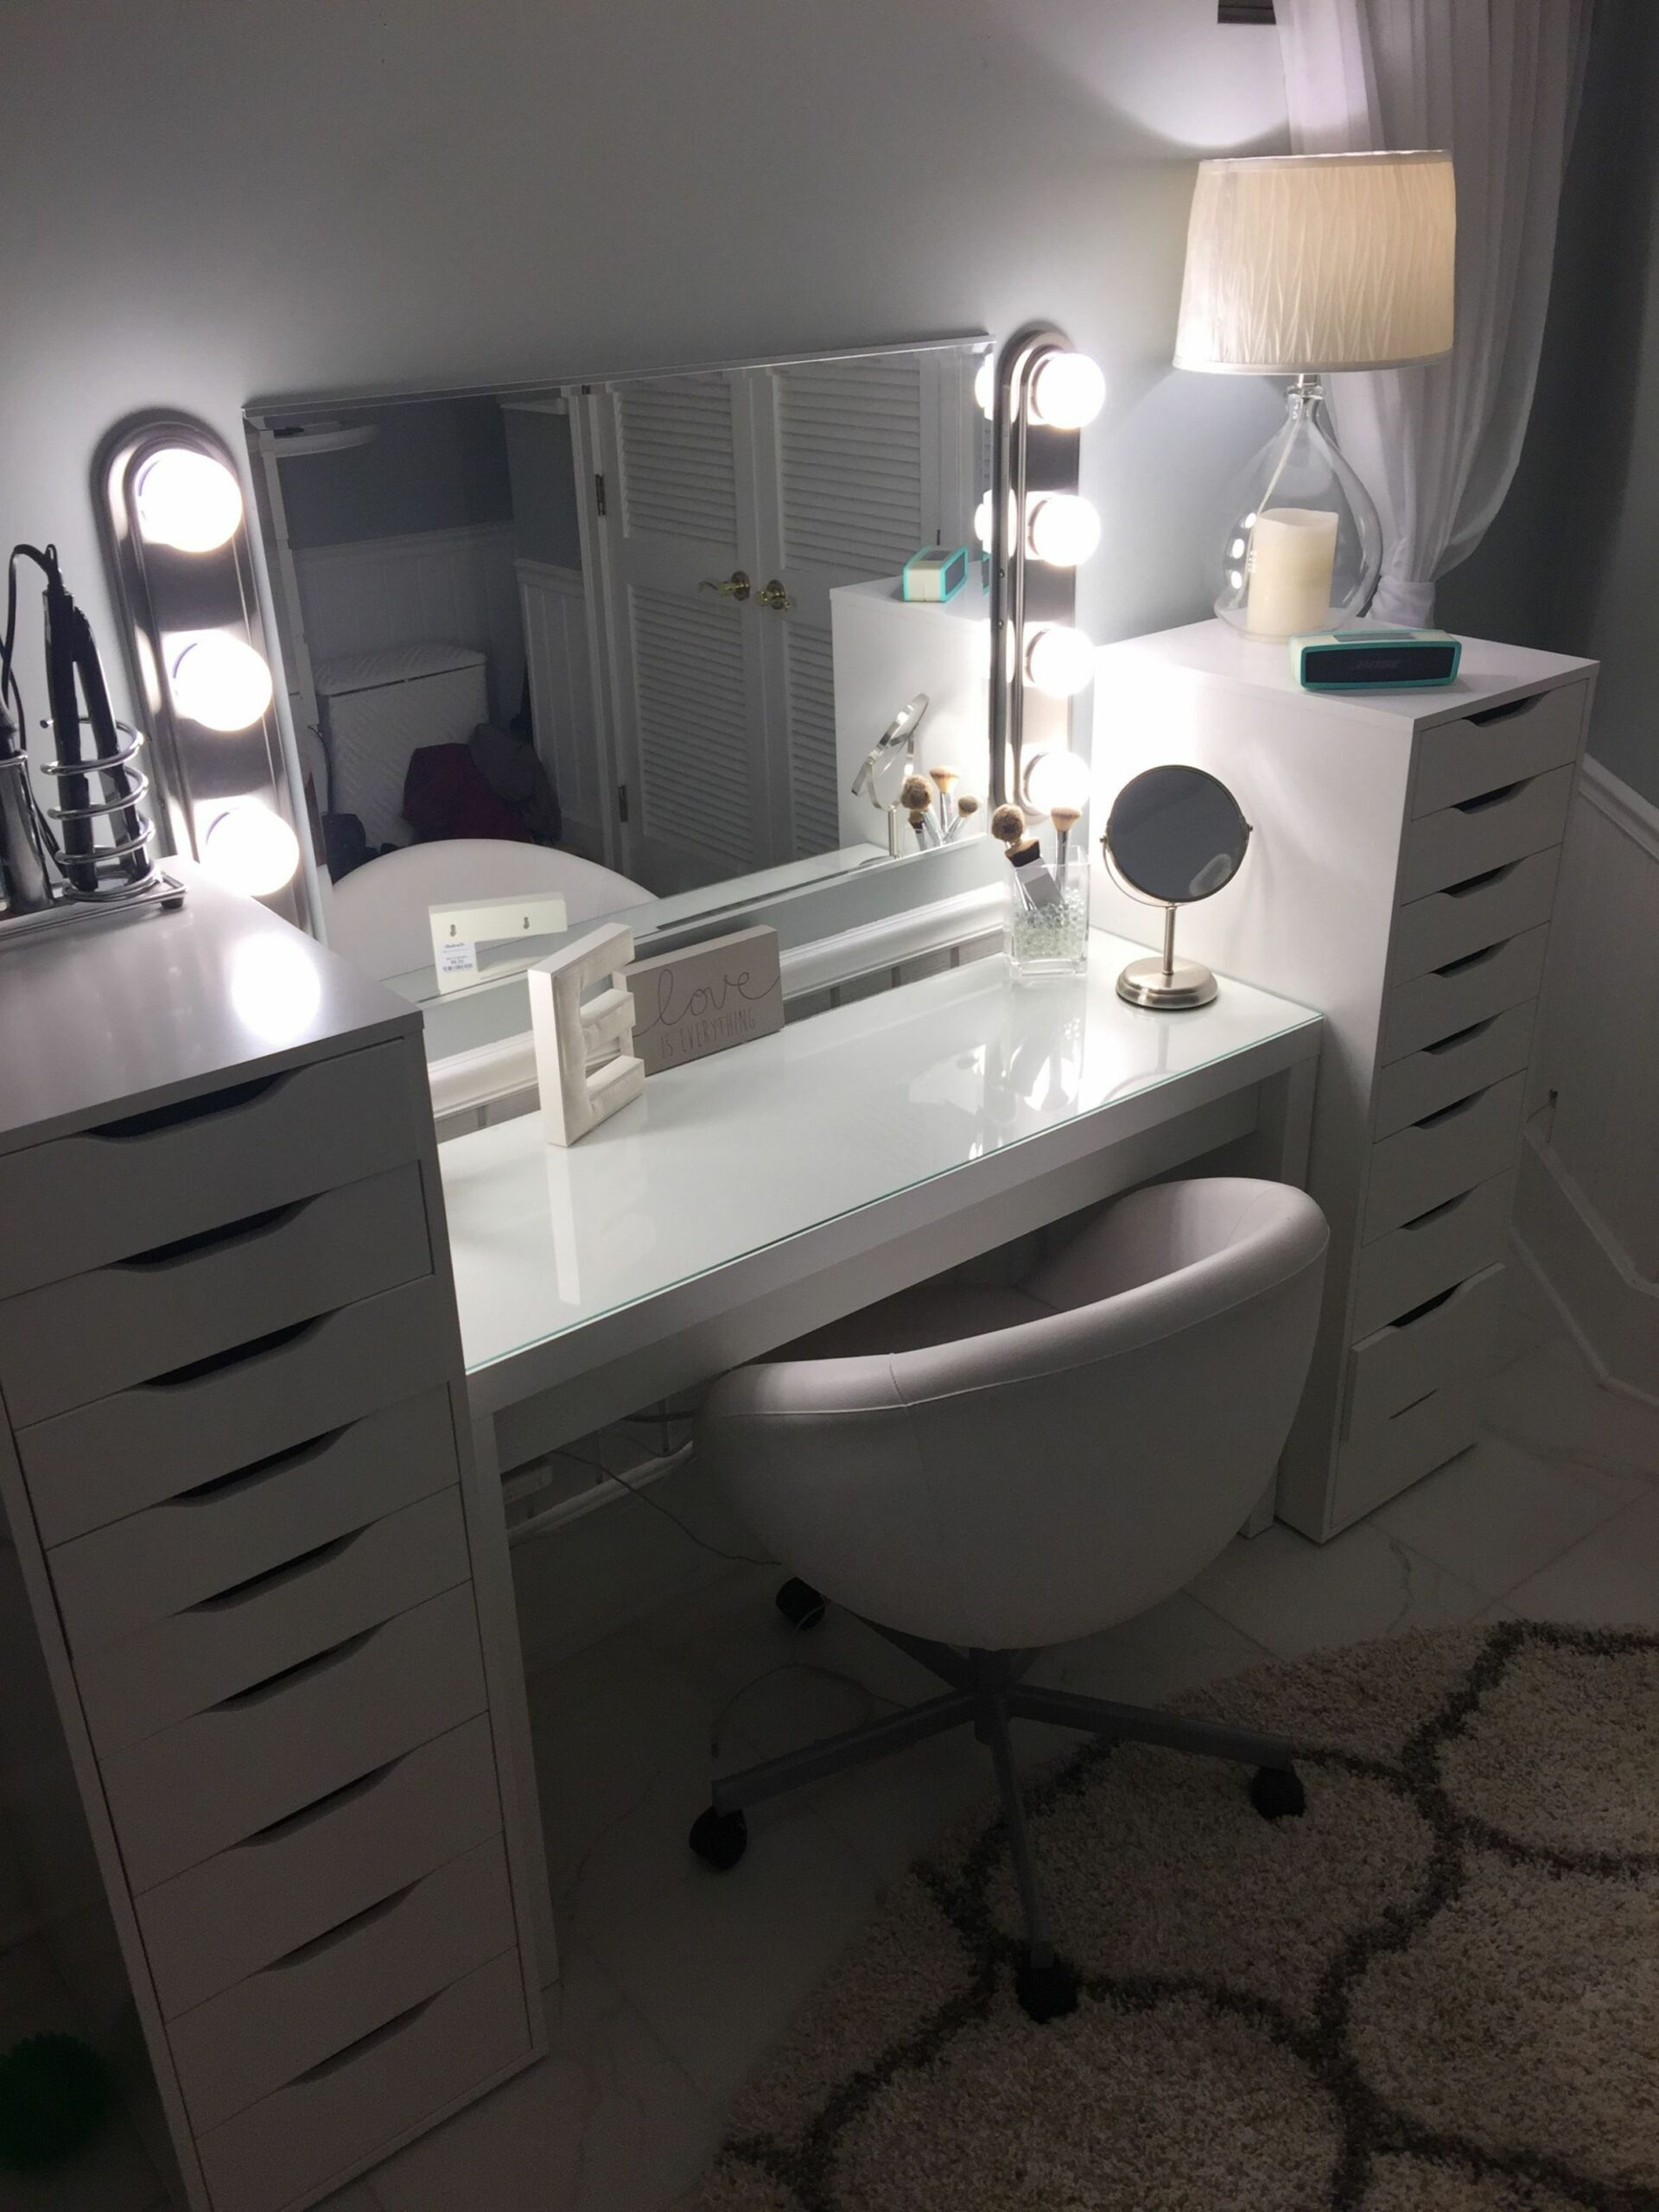 Ikea #makeup #lighted-makeup #DIY #home-depot | Vanity makeup ...